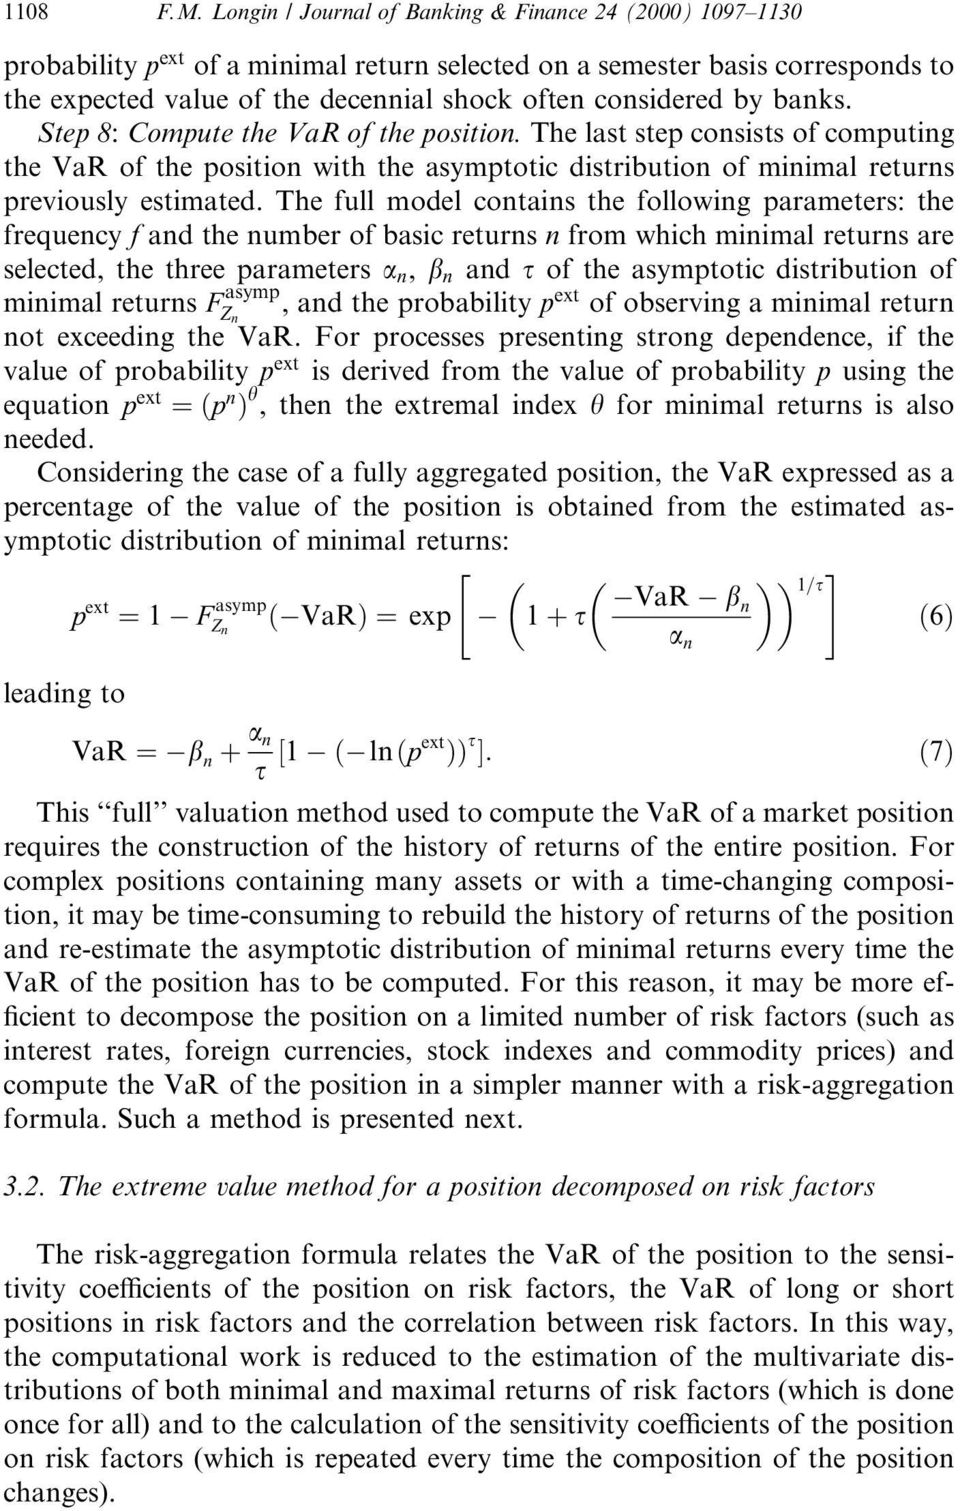 by banks. Step 8: Compute the VaR of the position. The last step consists of computing the VaR of the position with the asymptotic distribution of minimal returns previously estimated.